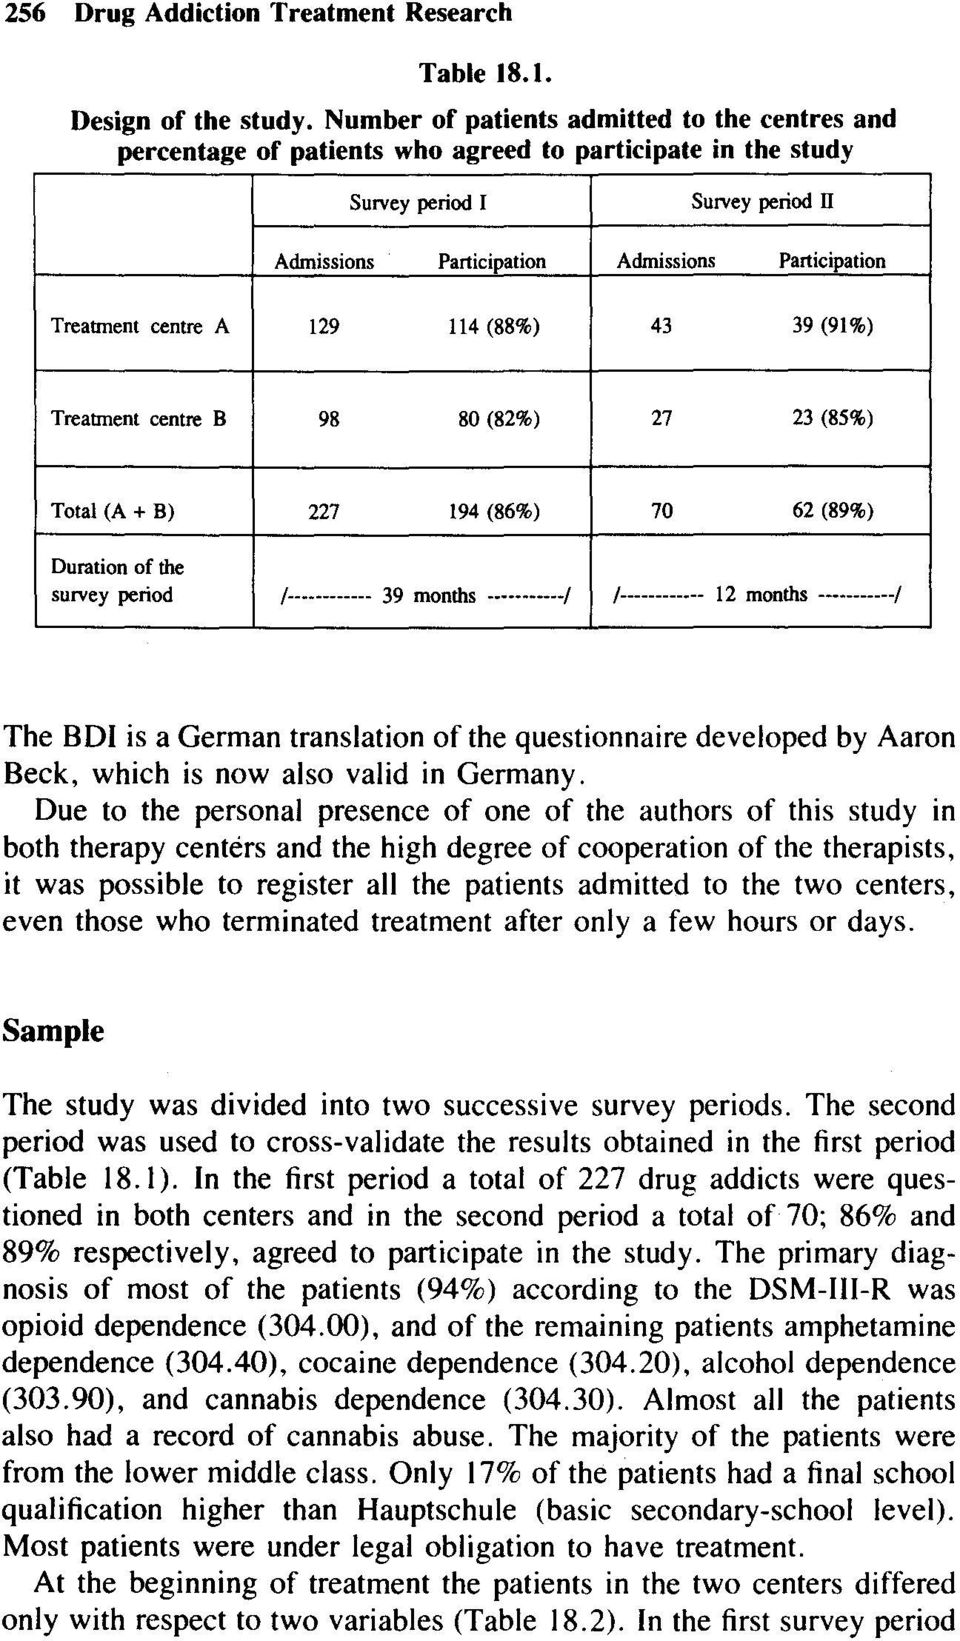 Treatment centre A 129 114 (88%) 43 39 (91%) Treatment centre B 98 80 (82%) 27 23 (85%) Total (A + B) 227 194 (86%) 70 62 (89%) Duration of the survey period 1------------ 39 months -----------1